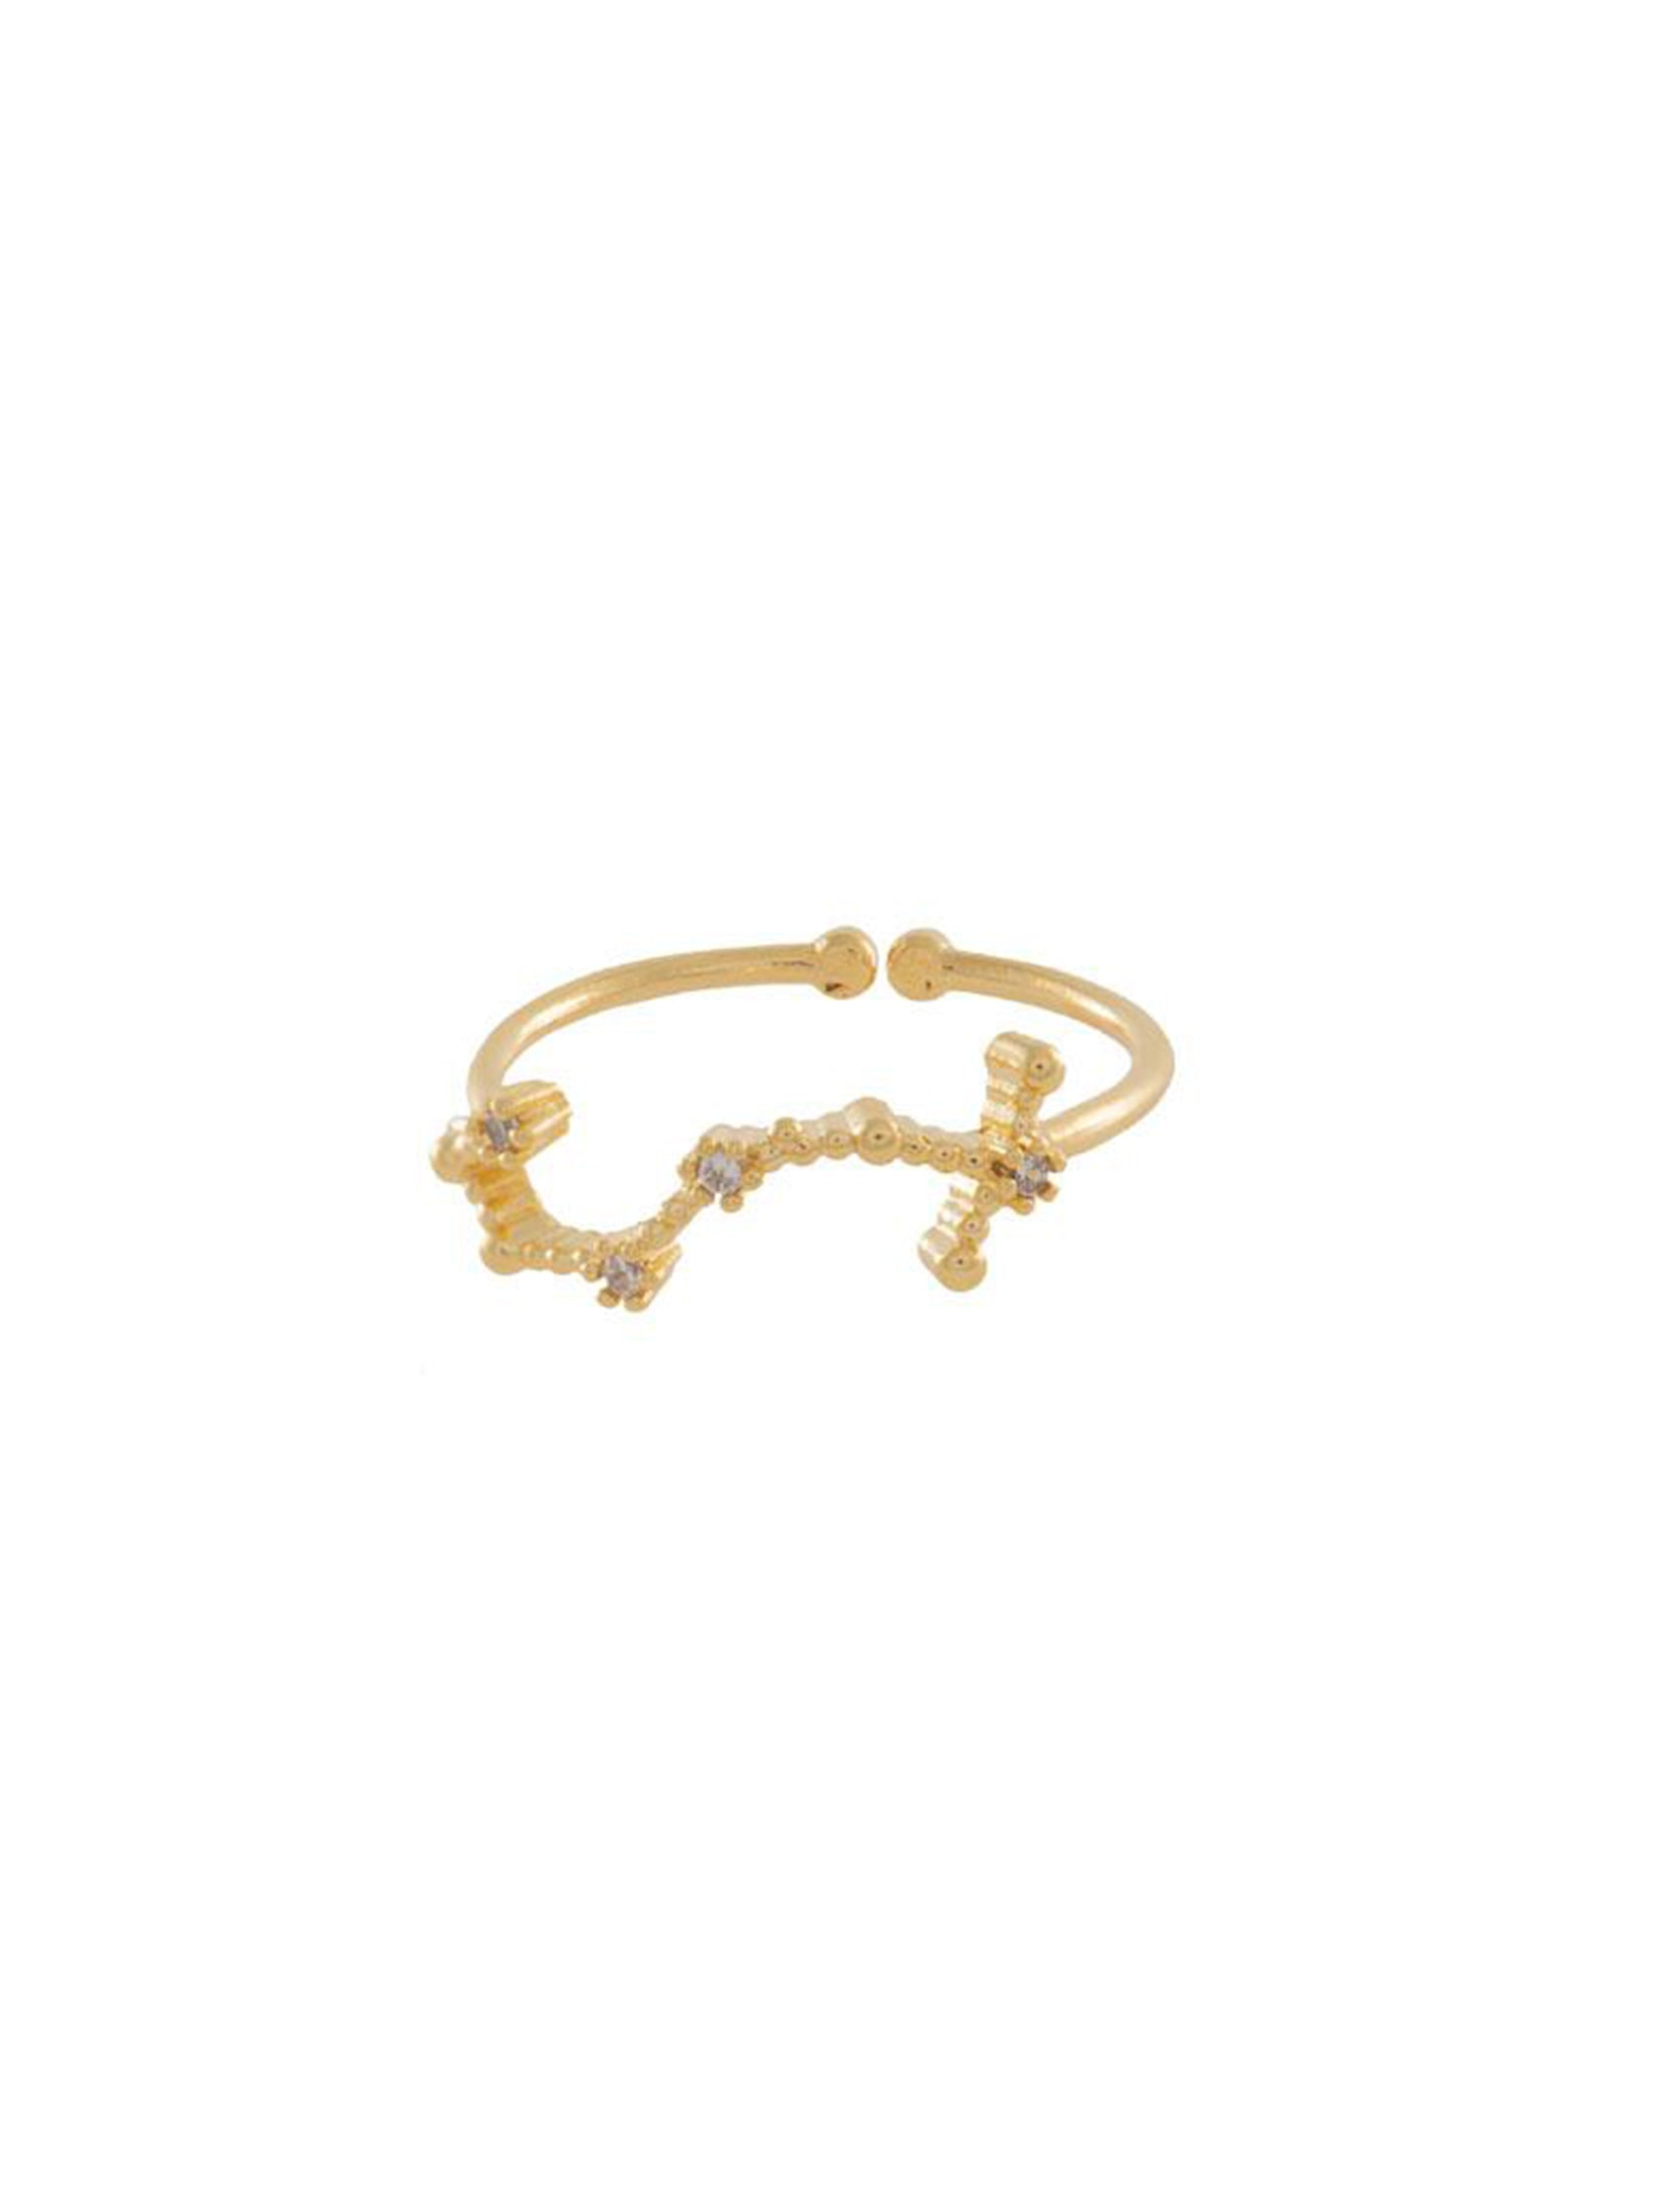 Women outfit in a ring rental from Wanderlust + Co called Zodiac Gold Ring (select Your Sign)